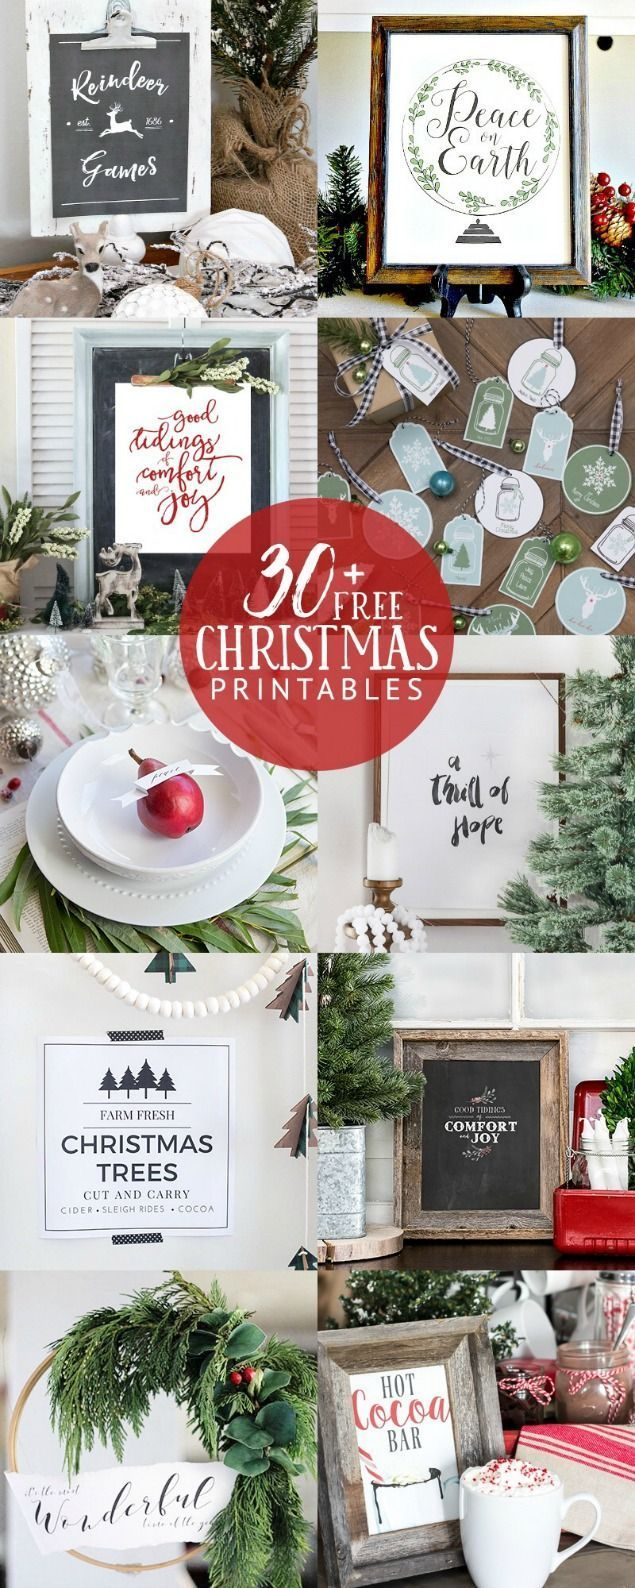 Mrs potts chip christmas decoration - Gorgeous Collection Of Free Christmas Printables There S Something For Every Room Such An Easy